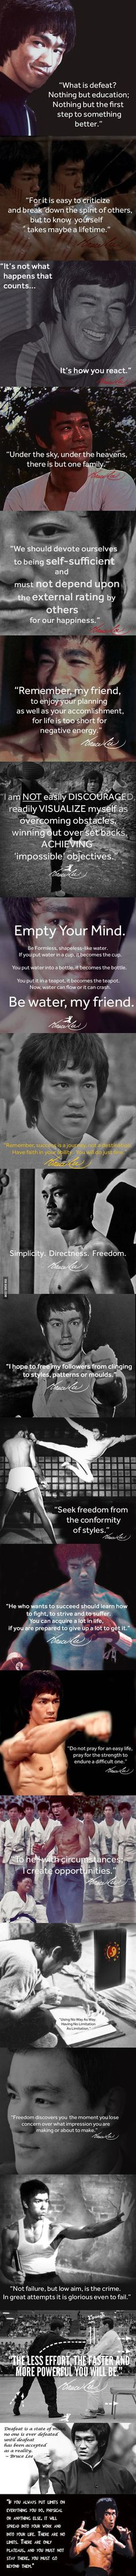 21 Powerful And Inspiring Quotes From The Legendary Bruce Lee